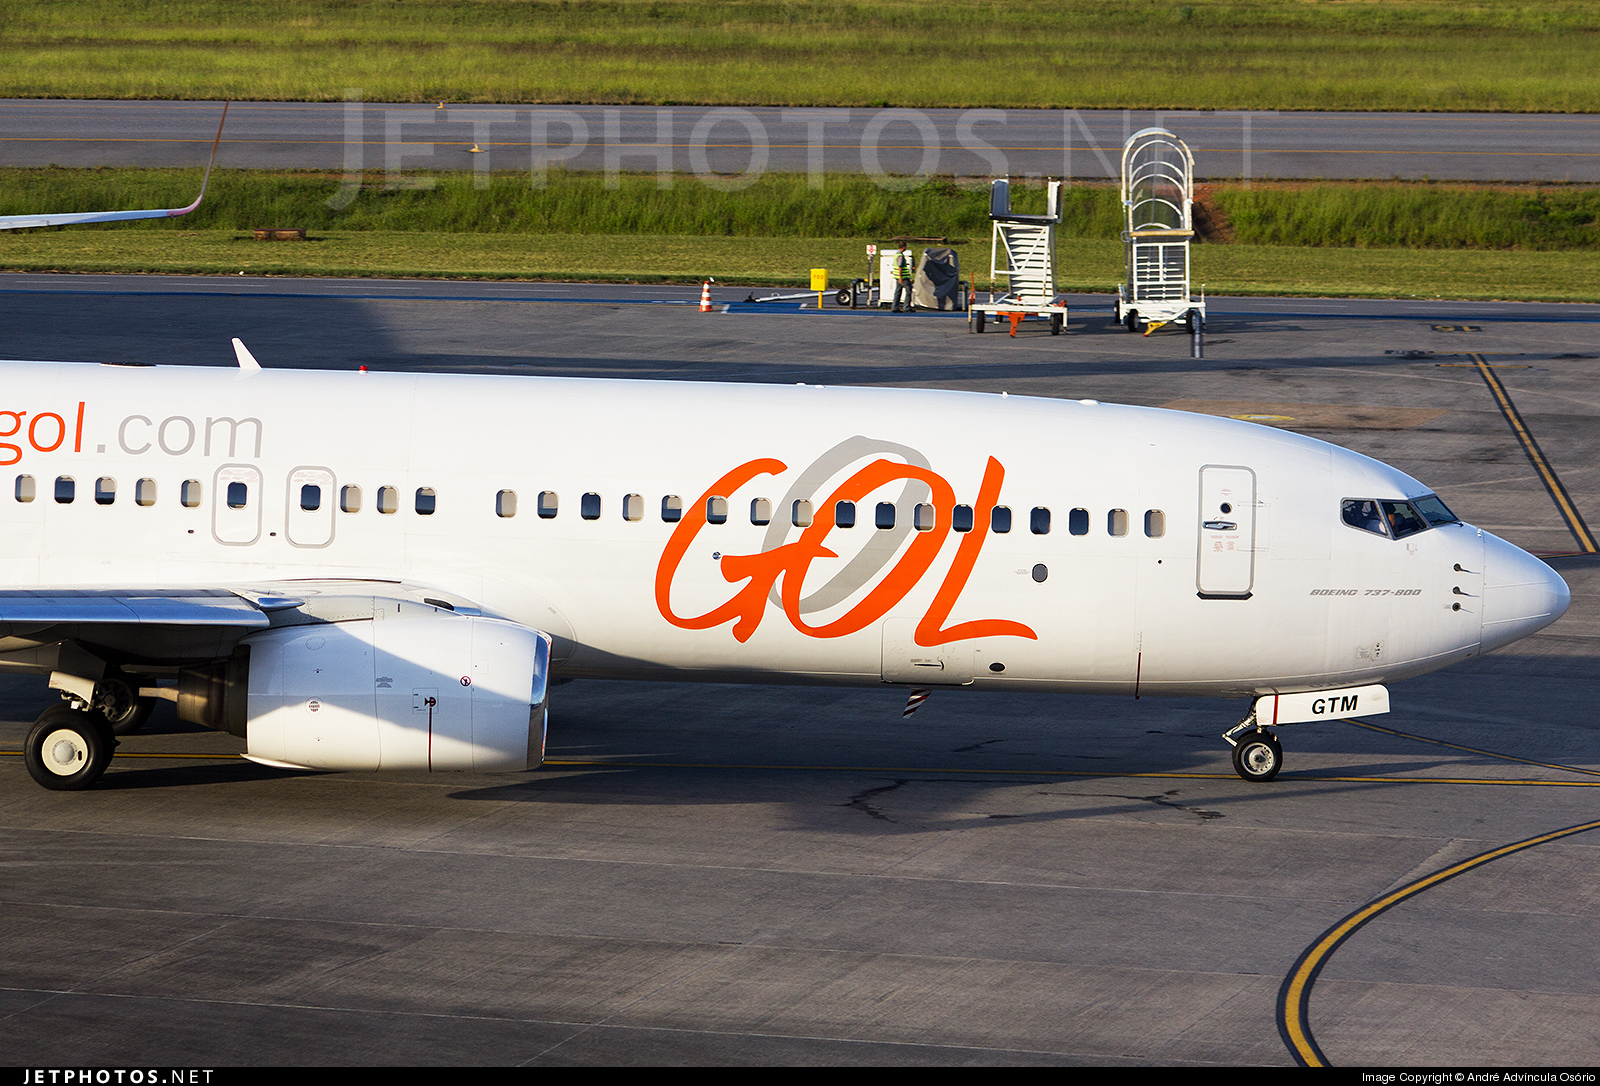 Photo of PR-GTM Boeing 737-8EH by André Advíncula Osório